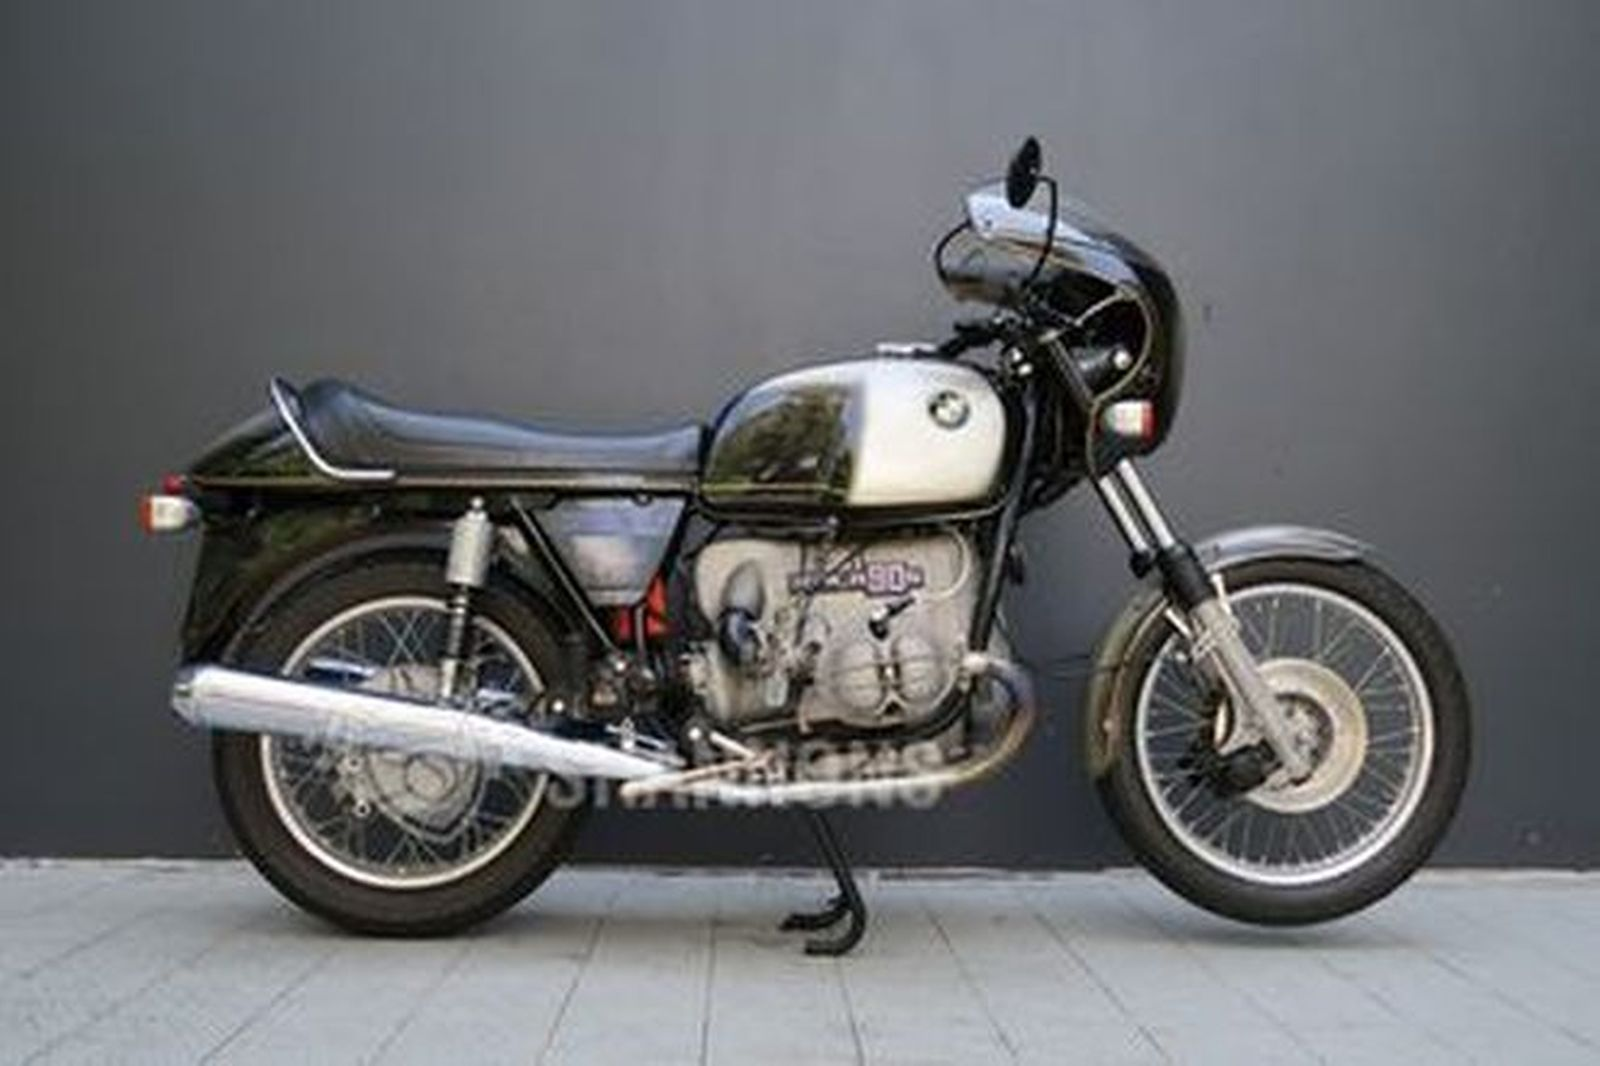 BMW R90S 900cc Motorcycle